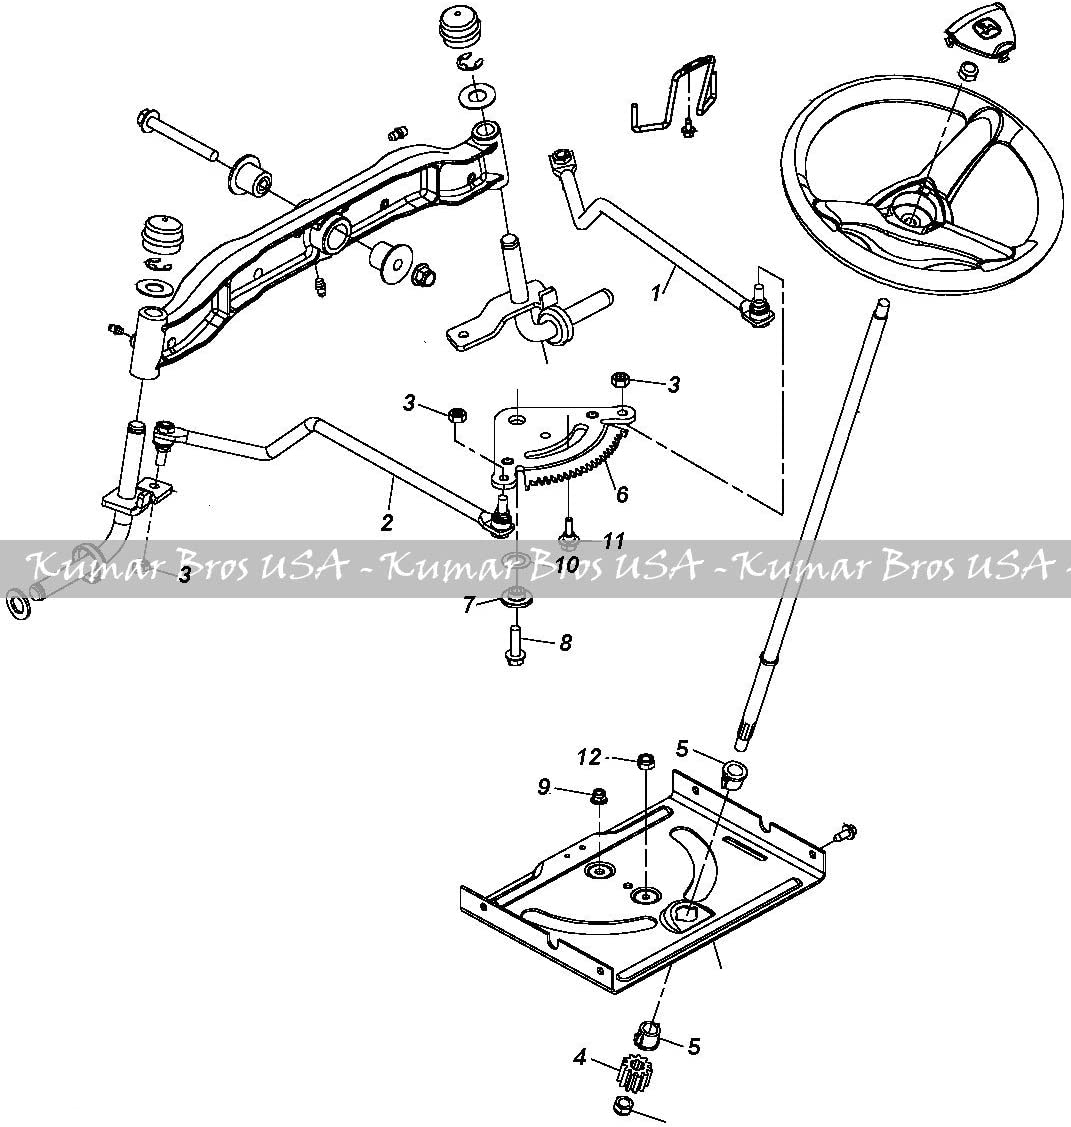 belt diagram d110 amazon com kumar bros usa tractor steering kit for john deere  kumar bros usa tractor steering kit for